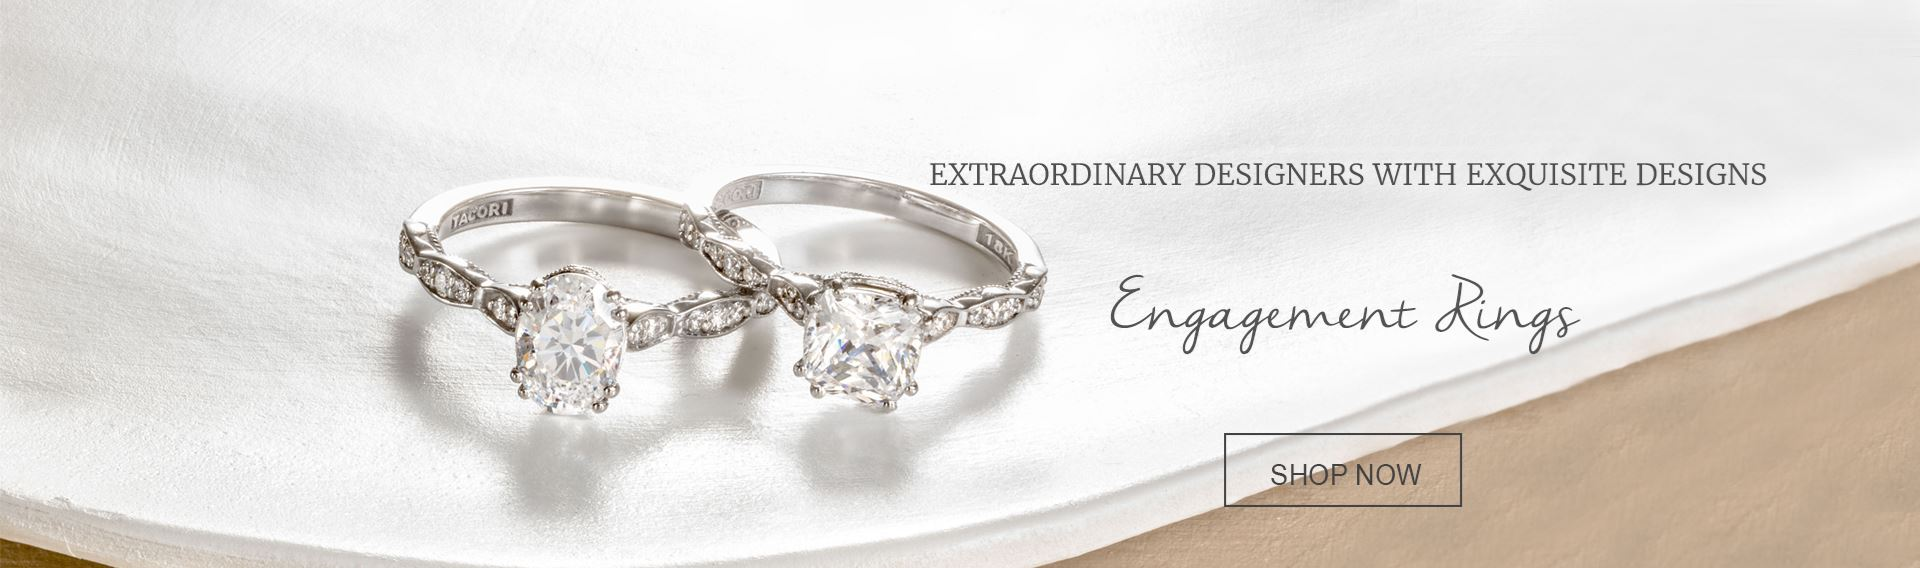 Designer Engagement Rings Fine Jewelry Arthur S Jewelers